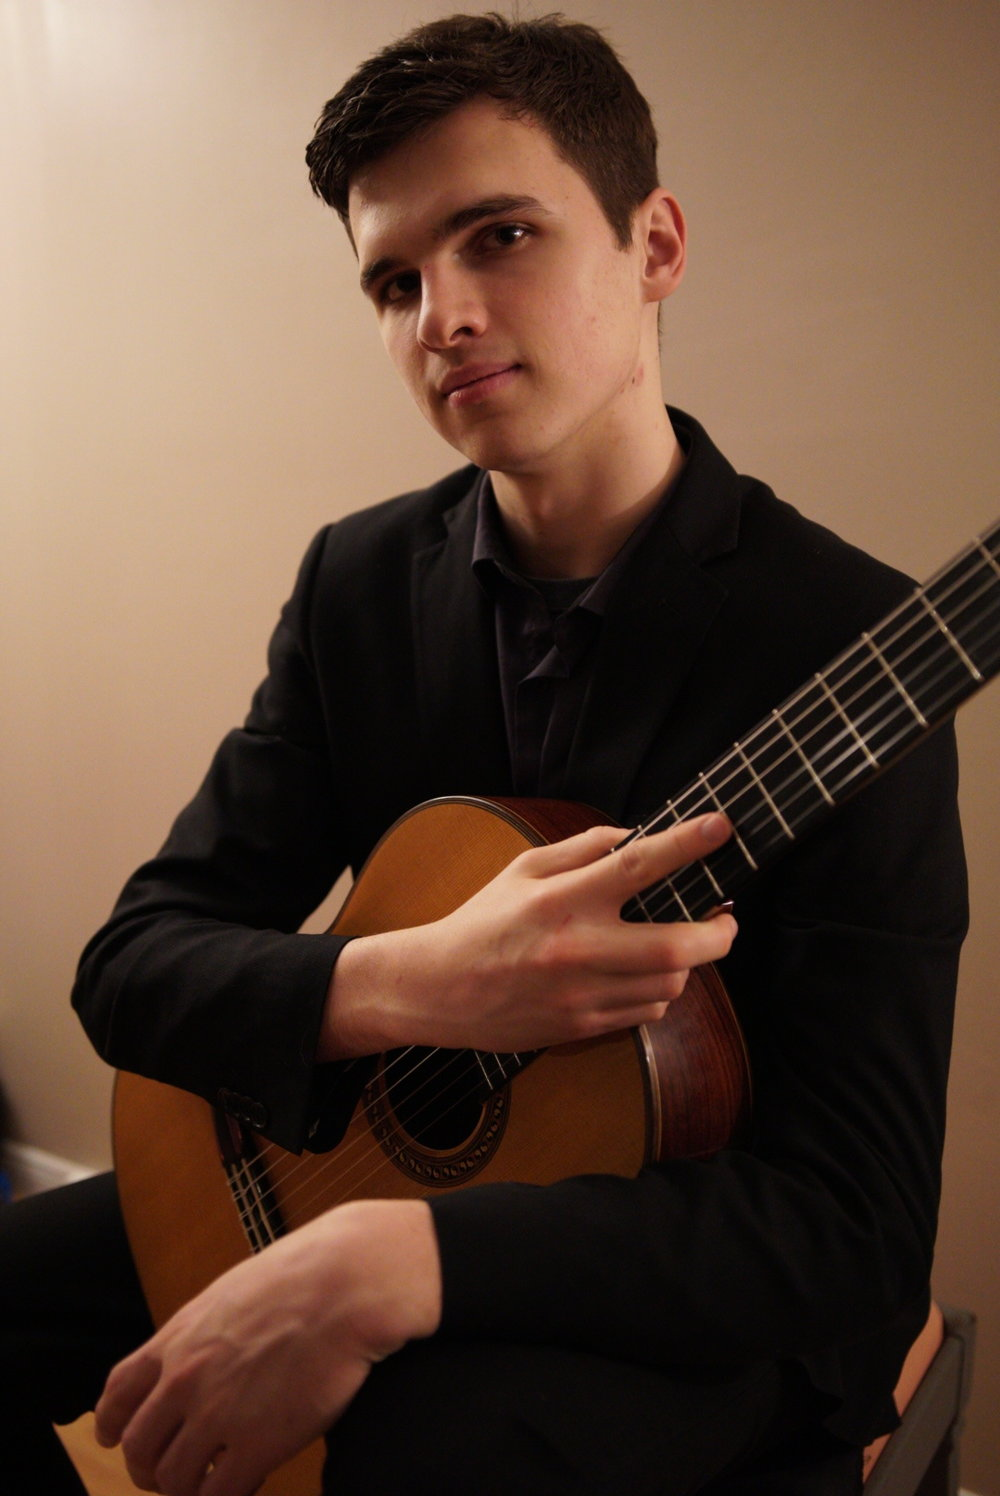 First Place 2016 Provincial Kiwanis Classical Guitar Competition  Winner of University of Windsor 2015Concerto Competition   Podium Finish 2016 Baldwin University International Guitar Competition   Arlene Janzen Memorial Scholarship  -